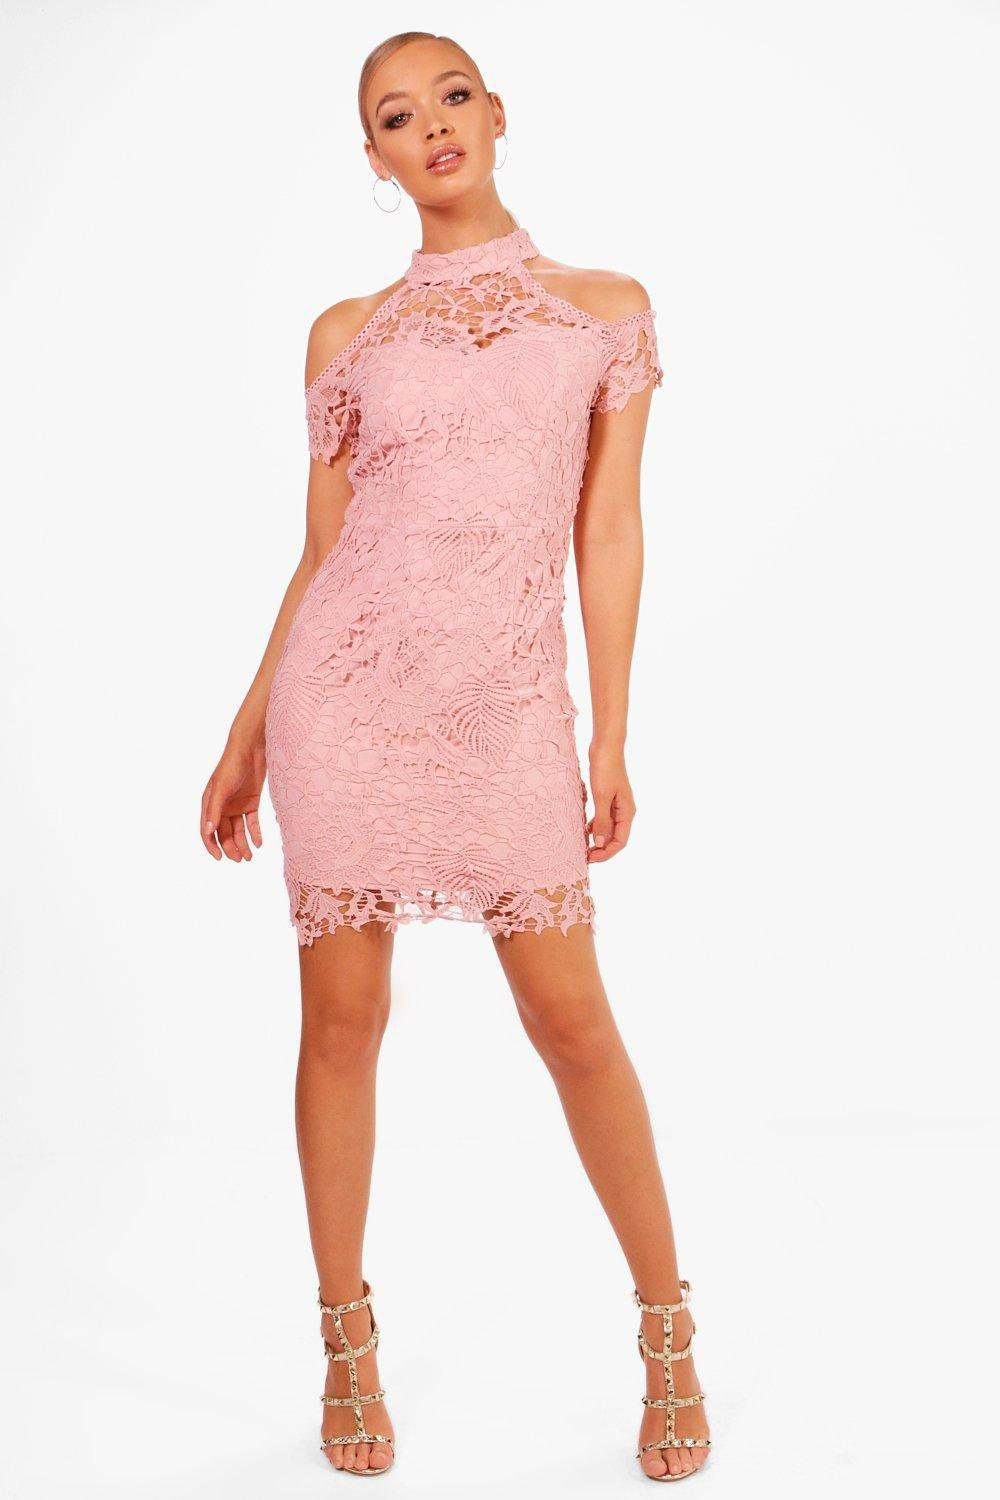 Boohoo Boutique Corded Lace Midi Dress in Pink - Lyst 556acf238